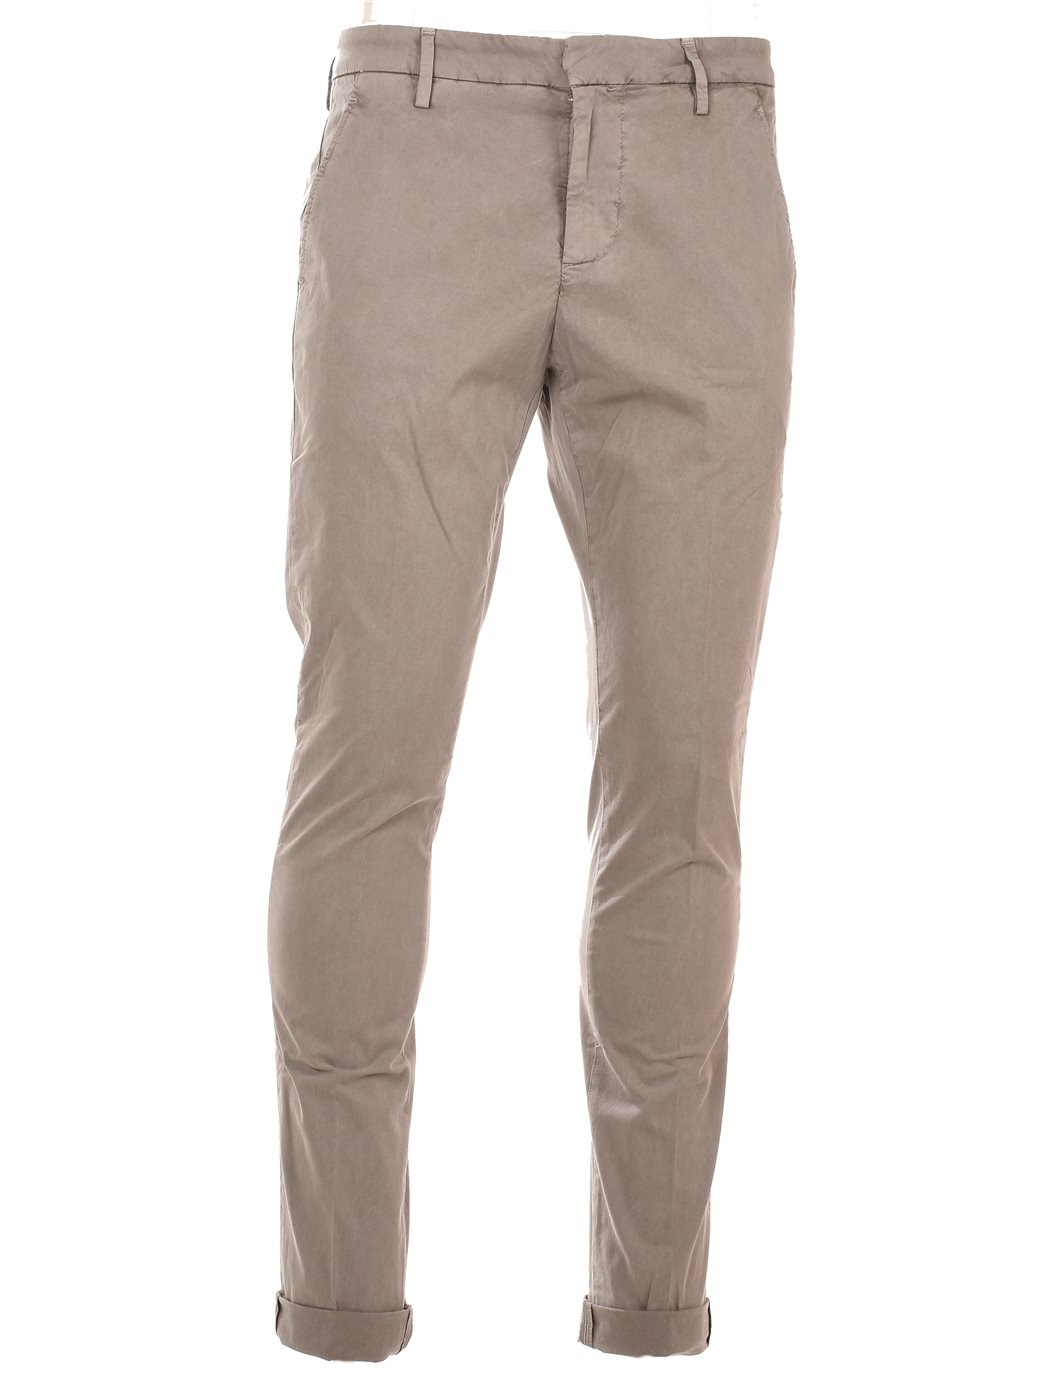 DONDUP UP235 DU920 PANTALONI